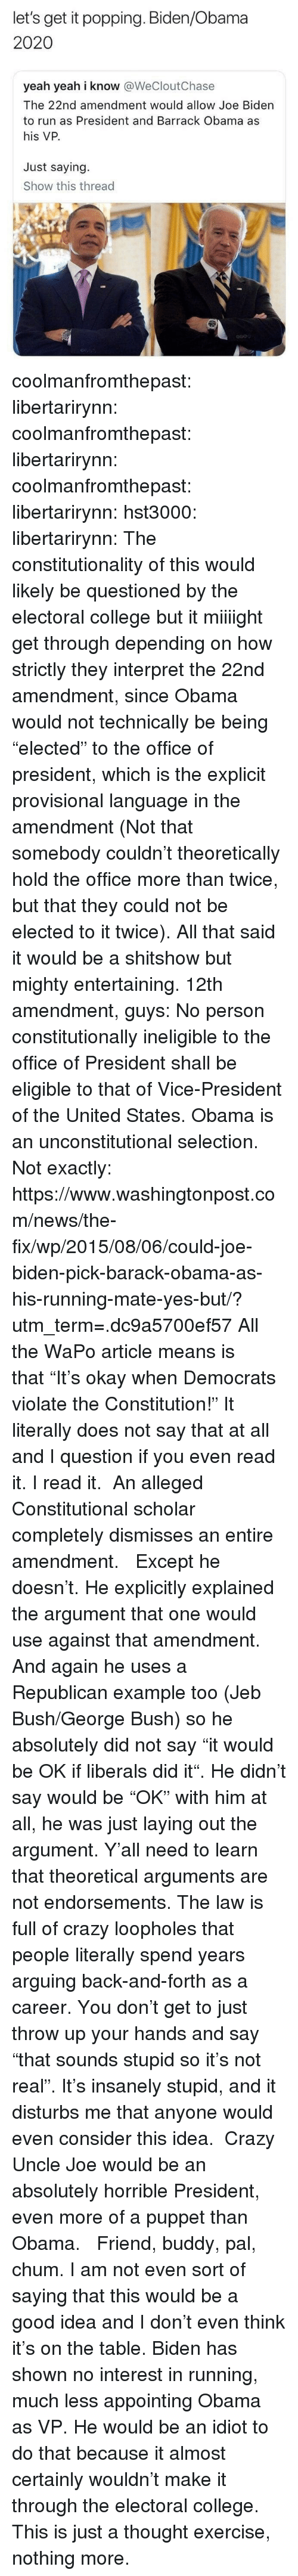 "College, Crazy, and Jeb Bush: let's get it popping. Biden/Obama  2020  yeah yeah i know @WeCloutChase  The 22nd amendment would allow Joe Biden  to run as President and Barrack Obama as  his VP.  Just saying.  Show this thread  600 coolmanfromthepast:  libertarirynn: coolmanfromthepast:   libertarirynn:  coolmanfromthepast:  libertarirynn:  hst3000:  libertarirynn:  The constitutionality of this would likely be questioned by the electoral college but it miiiight get through depending on how strictly they interpret the 22nd amendment, since Obama would not technically be being ""elected"" to the office of president, which is the explicit provisional language in the amendment (Not that somebody couldn't theoretically hold the office more than twice, but that they could not be elected to it twice).  All that said it would be a shitshow but mighty entertaining.  12th amendment, guys:  No person constitutionally ineligible to the office of President shall  be eligible to that of Vice-President of the United States.  Obama is an unconstitutional selection.   Not exactly: https://www.washingtonpost.com/news/the-fix/wp/2015/08/06/could-joe-biden-pick-barack-obama-as-his-running-mate-yes-but/?utm_term=.dc9a5700ef57  All the WaPo article means is that ""It's okay when Democrats violate the Constitution!""  It literally does not say that at all and I question if you even read it.  I read it.  An alleged Constitutional scholar completely dismisses an entire amendment.     Except he doesn't. He explicitly explained the argument that one would use against that amendment. And again he uses a Republican example too (Jeb Bush/George Bush) so he absolutely did not say ""it would be OK if liberals did it"". He didn't say would be ""OK"" with him at all, he was just laying out the argument.  Y'all need to learn that theoretical arguments are not endorsements. The law is full of crazy loopholes that people literally spend years arguing back-and-forth as a career. You don't get to just throw up your hands and say ""that sounds stupid so it's not real"".  It's insanely stupid, and it disturbs me that anyone would even consider this idea.  Crazy Uncle Joe would be an absolutely horrible President, even more of a puppet than Obama.    Friend, buddy, pal, chum. I am not even sort of saying that this would be a good idea and I don't even think it's on the table. Biden has shown no interest in running, much less appointing Obama as VP. He would be an idiot to do that because it almost certainly wouldn't make it through the electoral college. This is just a thought exercise, nothing more."